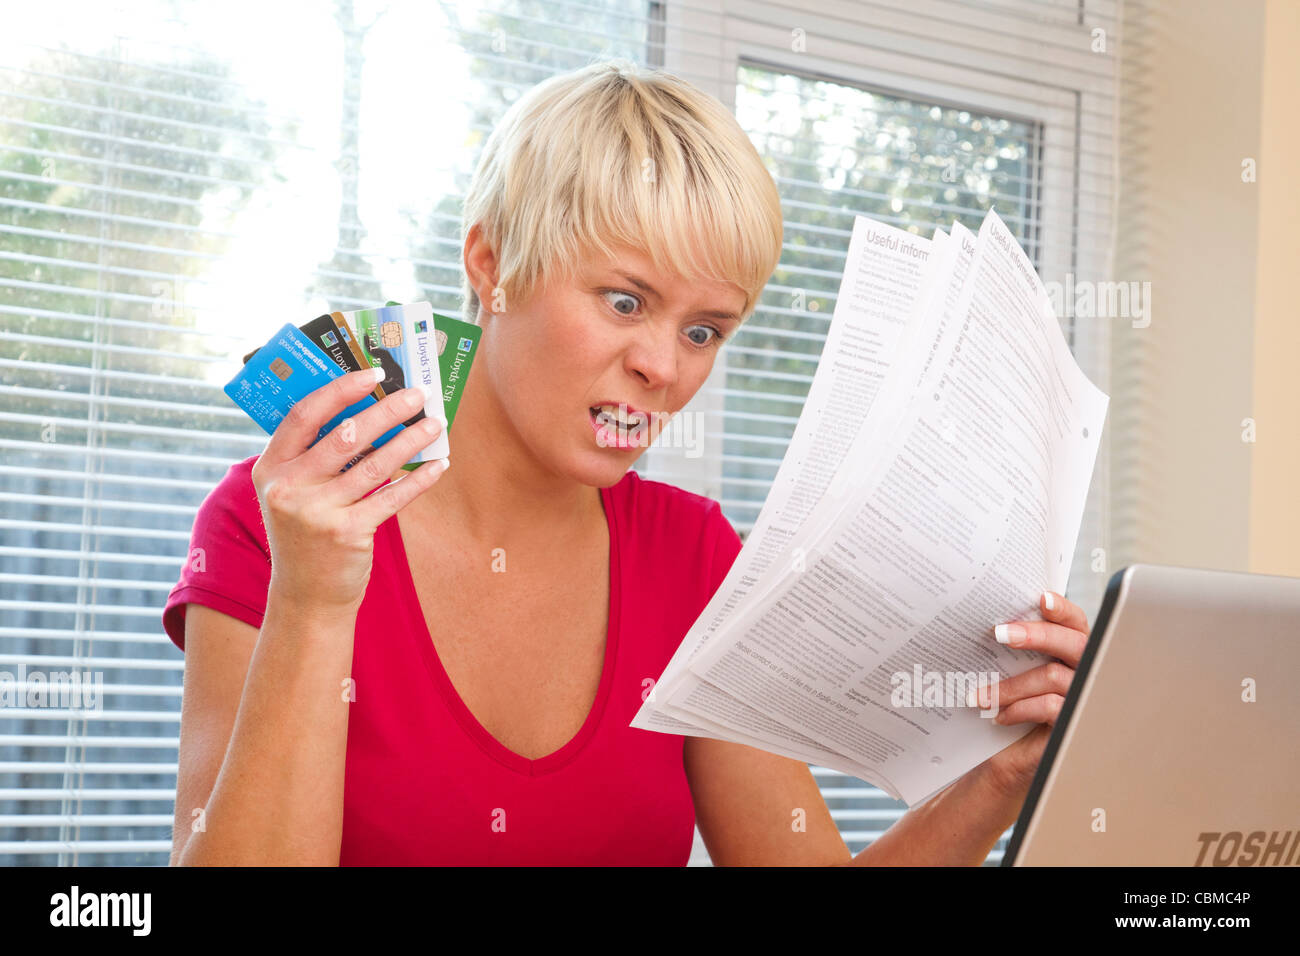 woman shocked at credit card statements - Stock Image